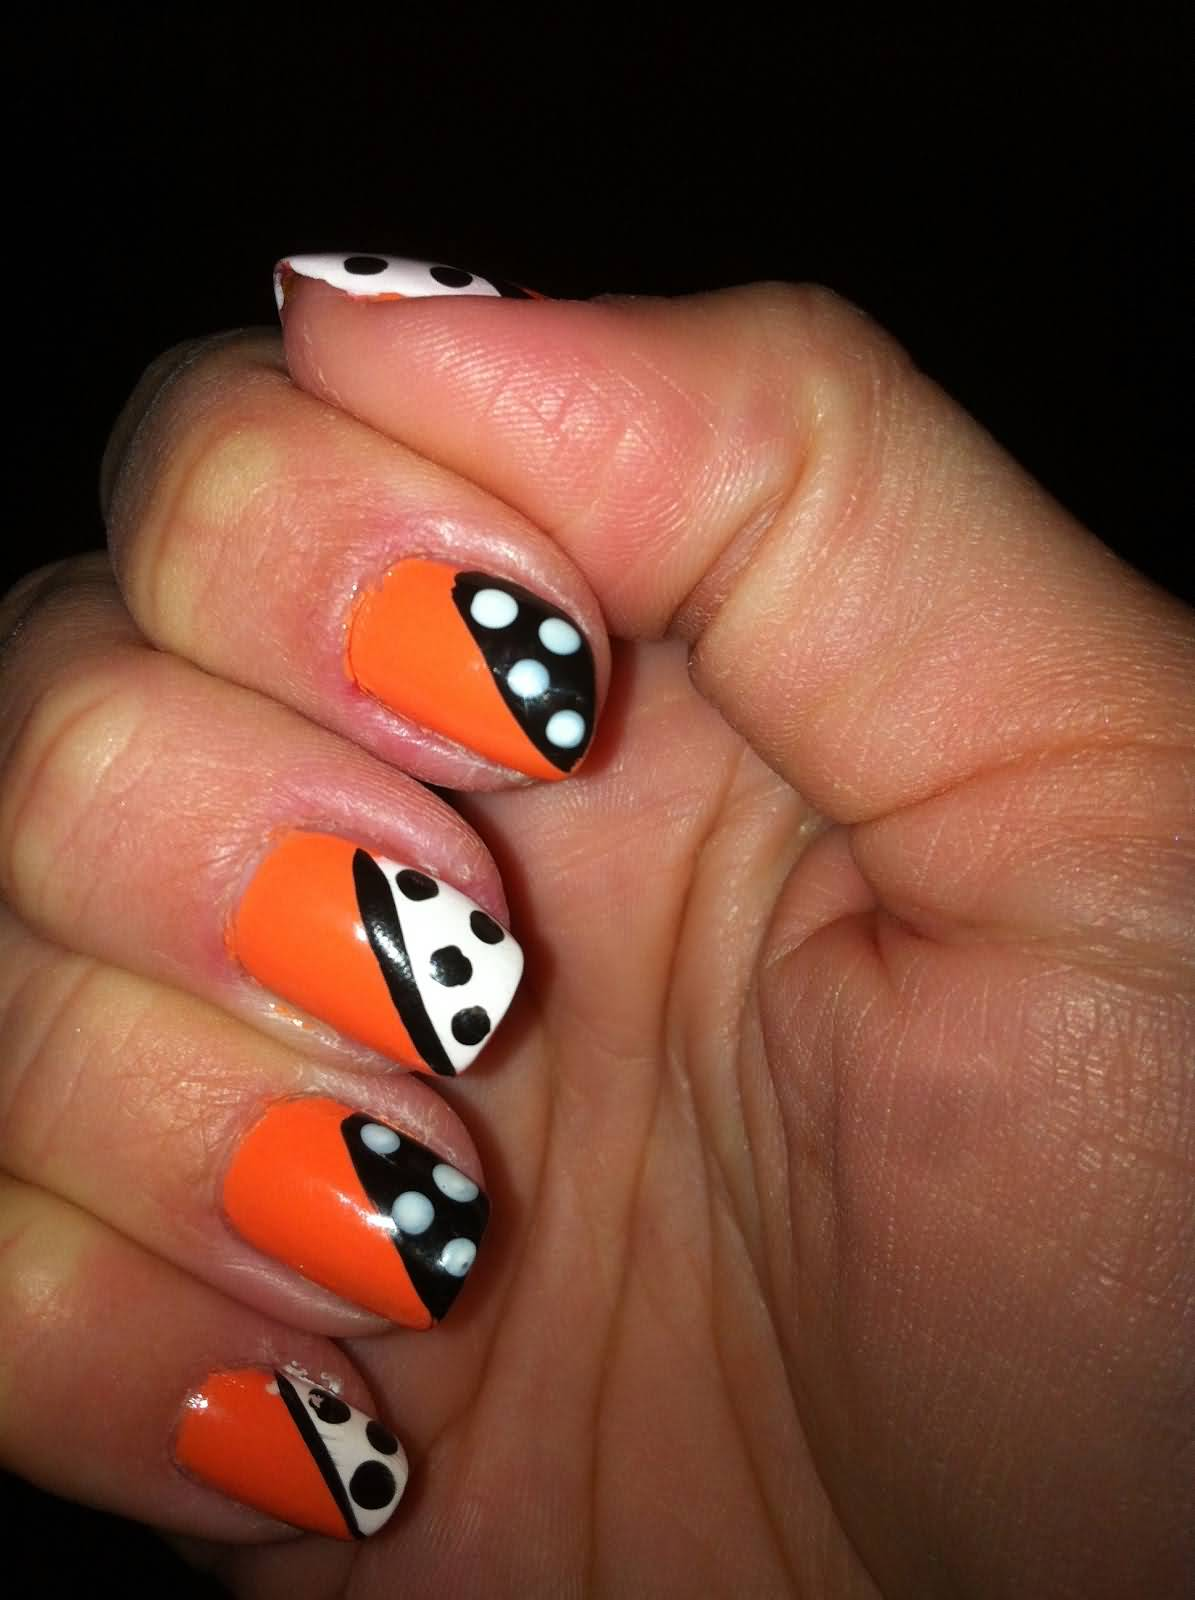 Orange With Black And White Diagonal Polka Dots Nail Art Design Idea